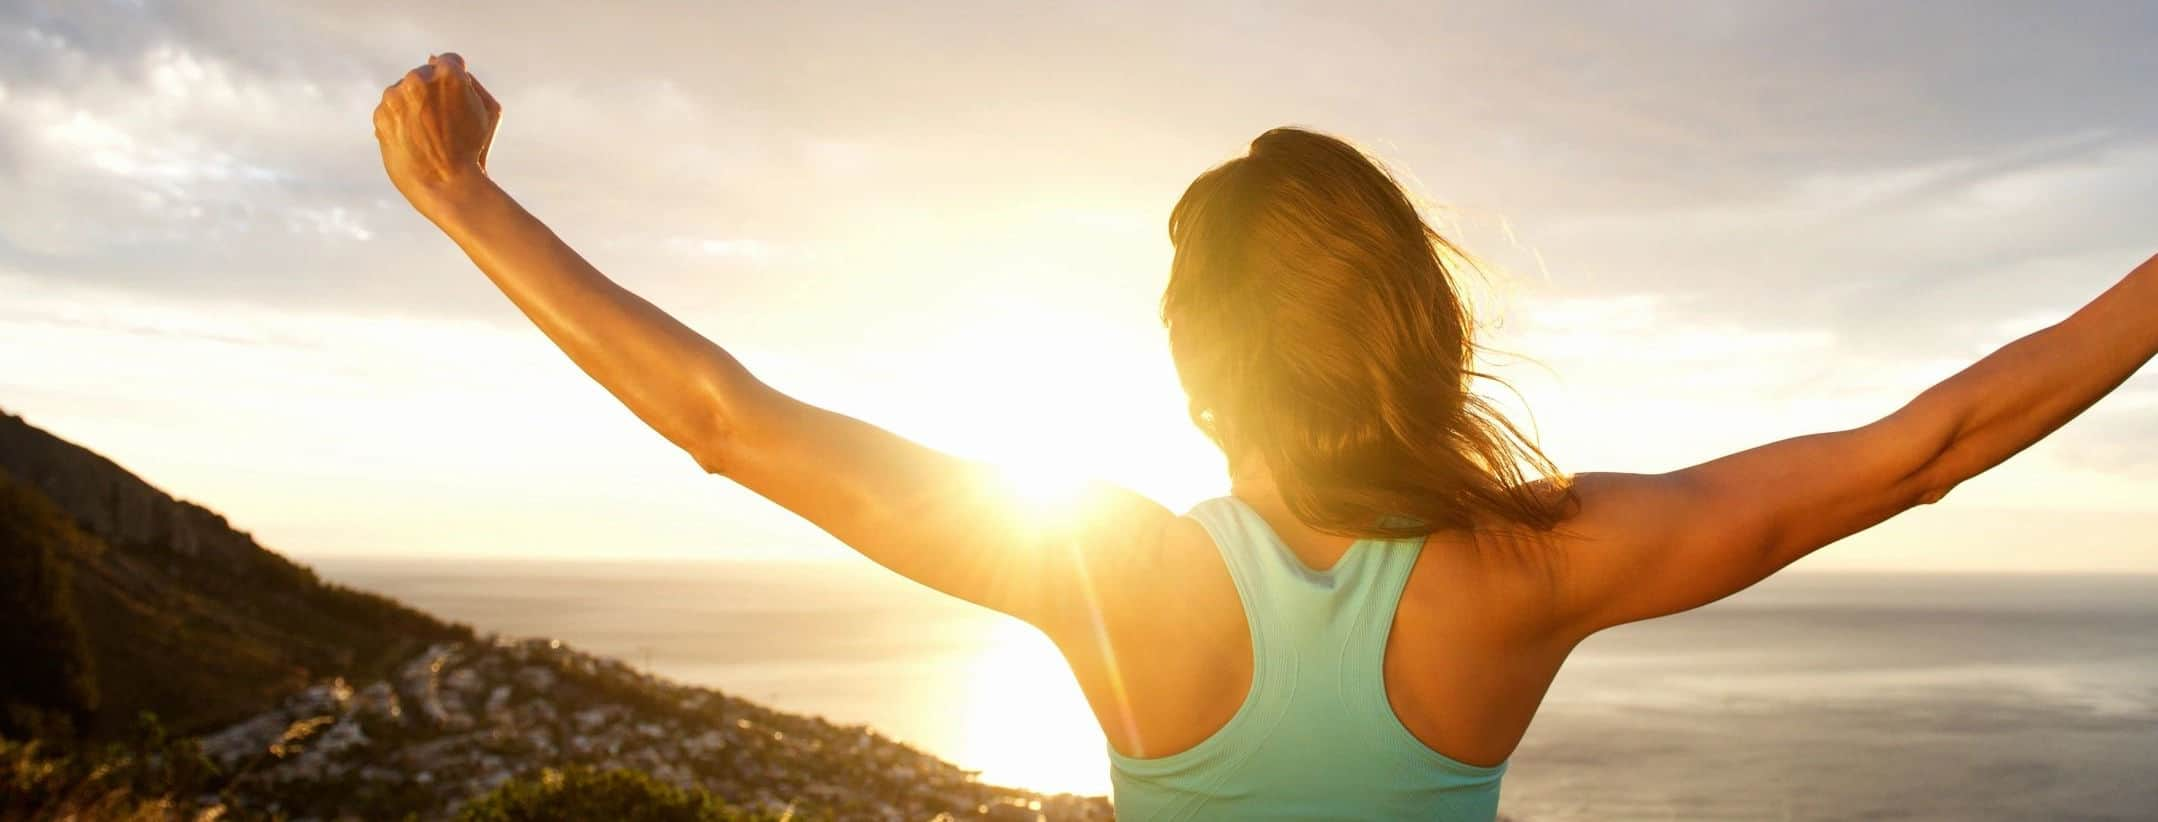 woman with outstretched arms watching the sunset over the ocean